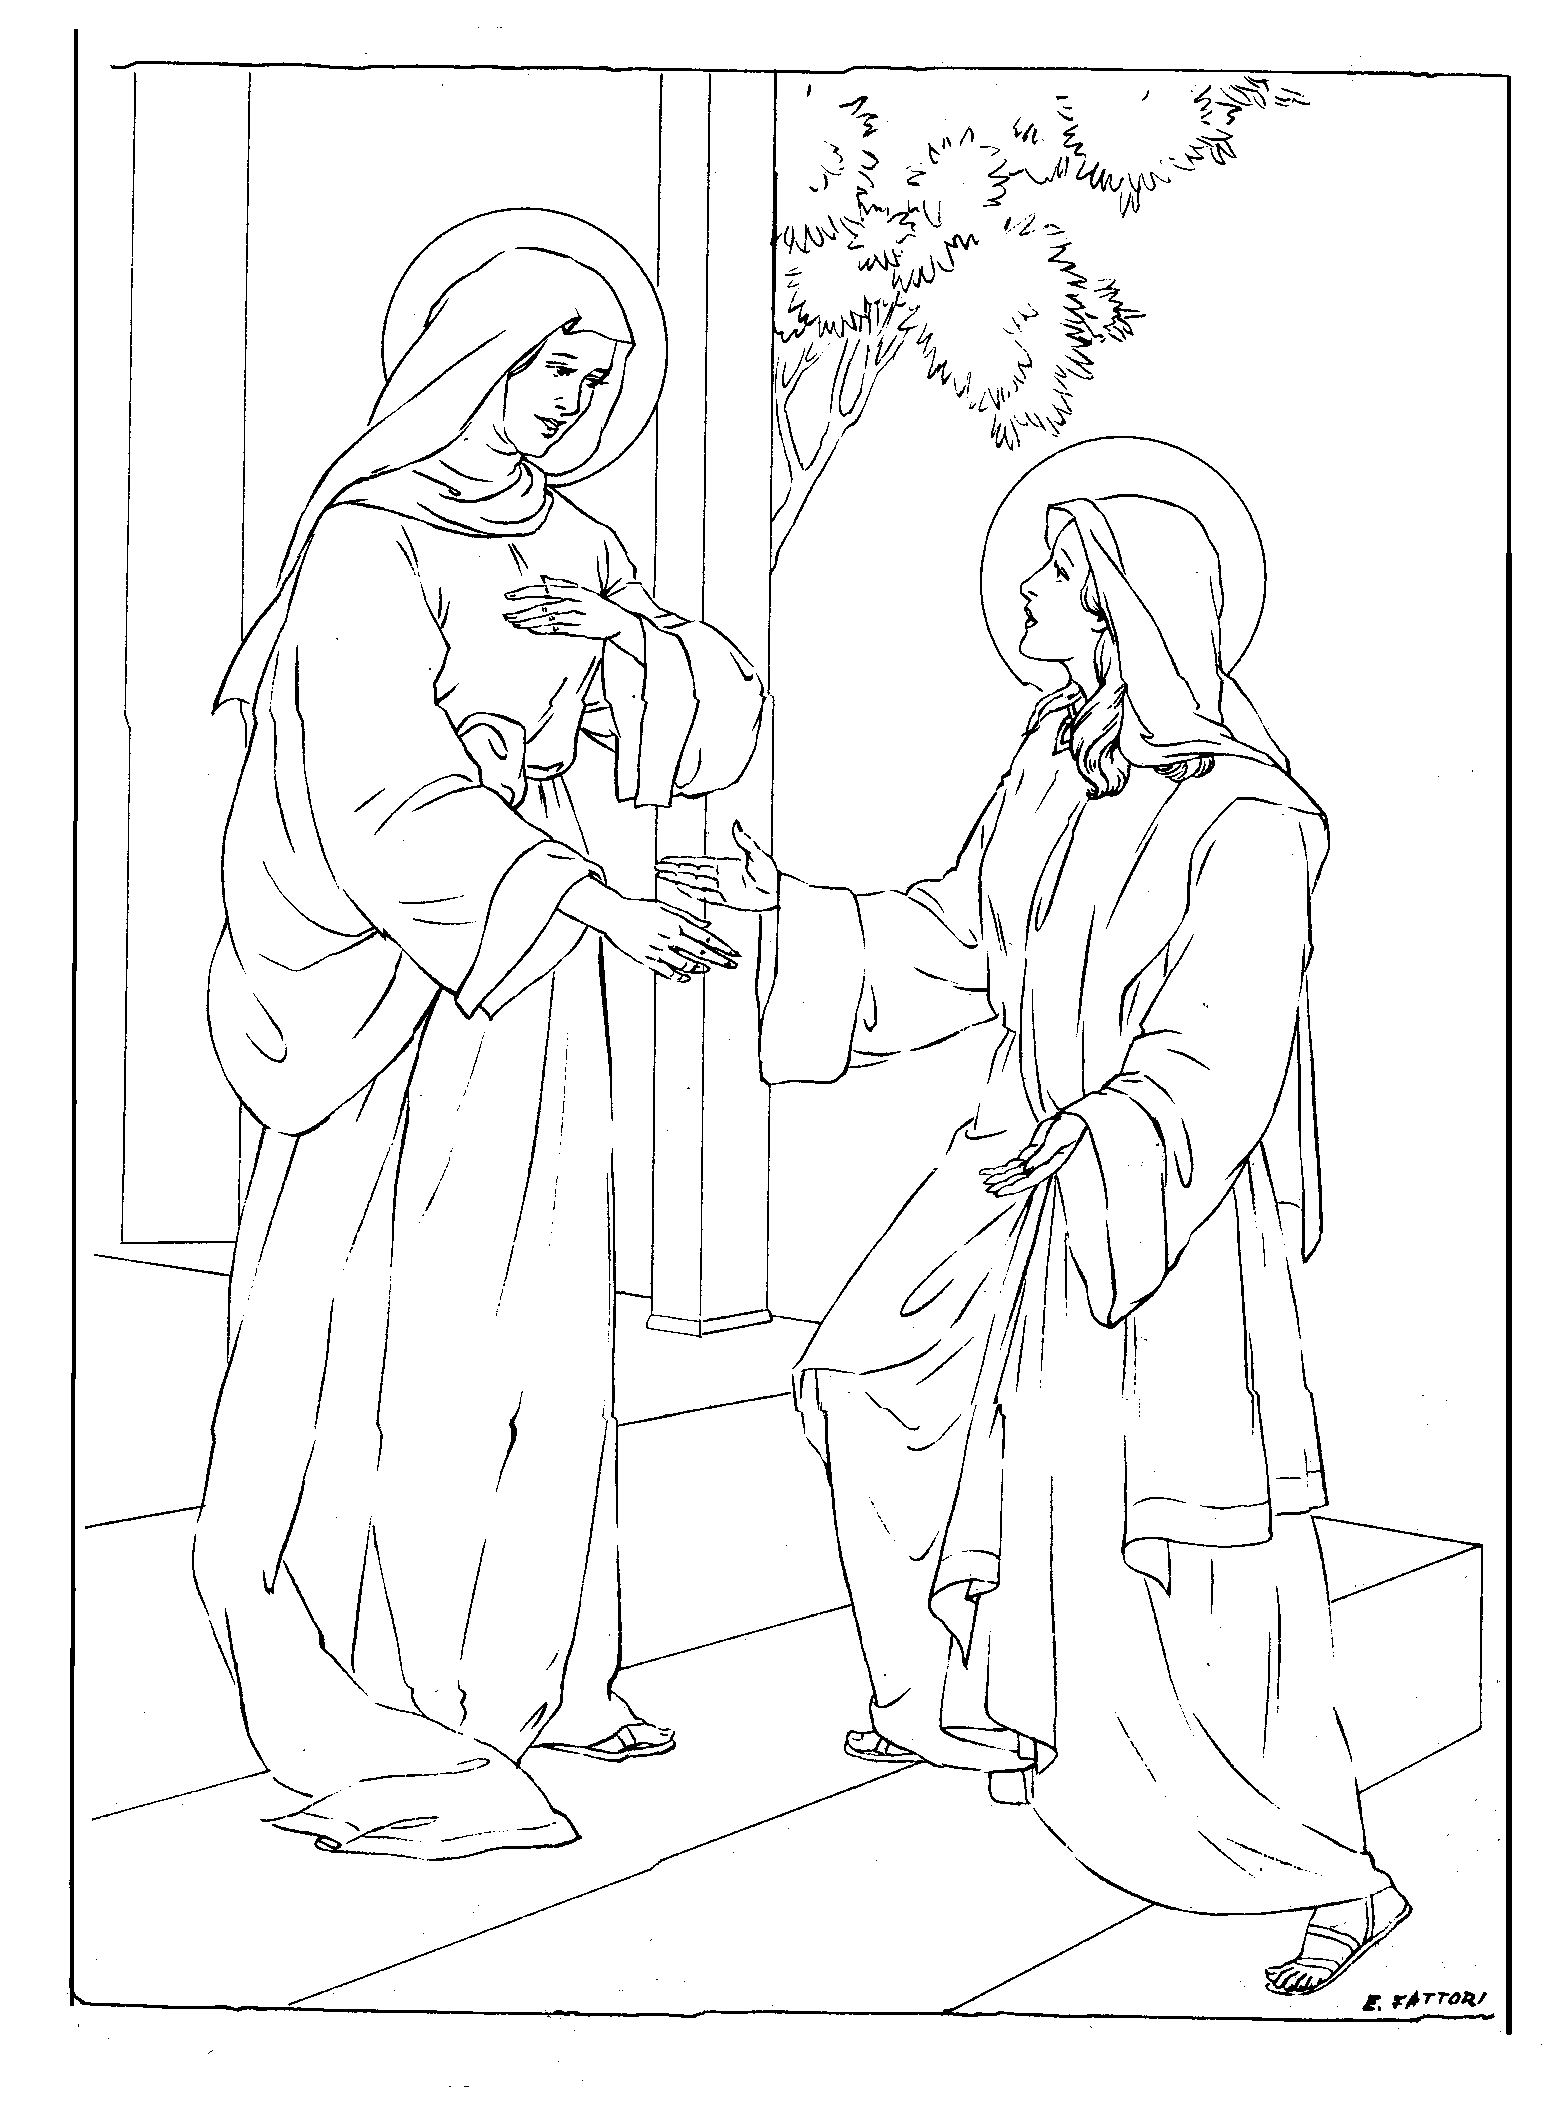 37 Best Mary Coloring Pages images in 2020 | Coloring pages ... | 2103x1555